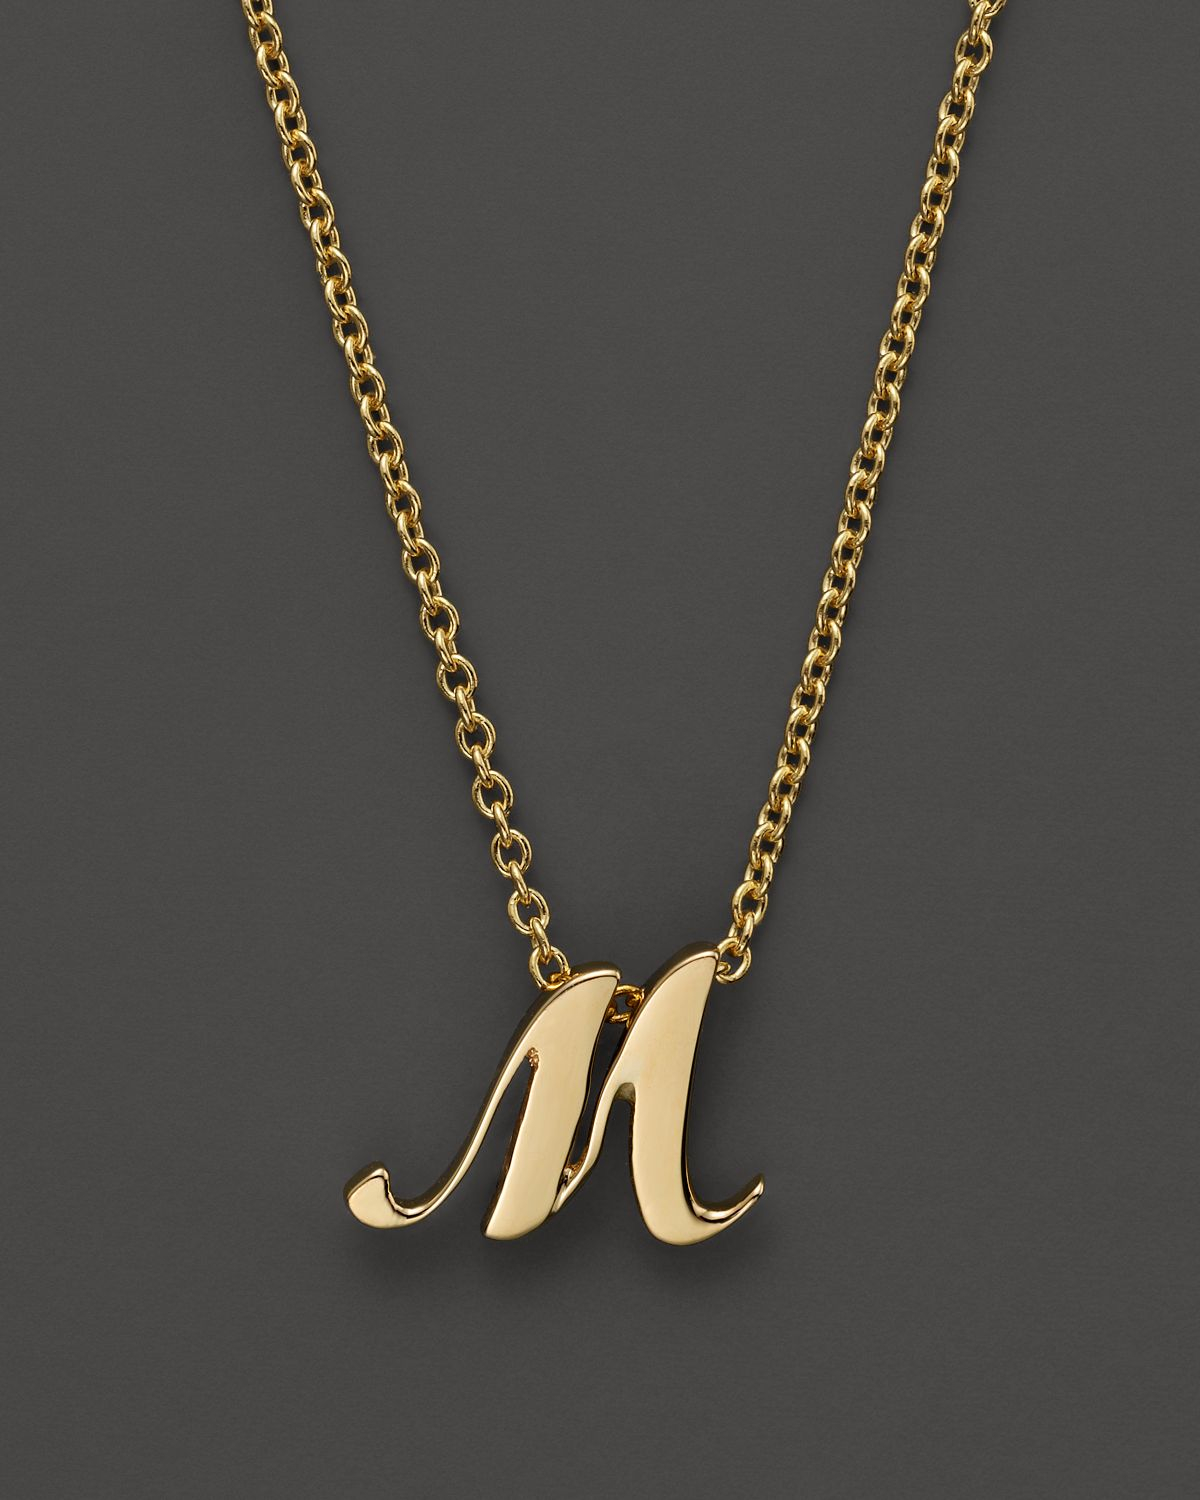 roberto coin 18k yellow gold letter initial pendant